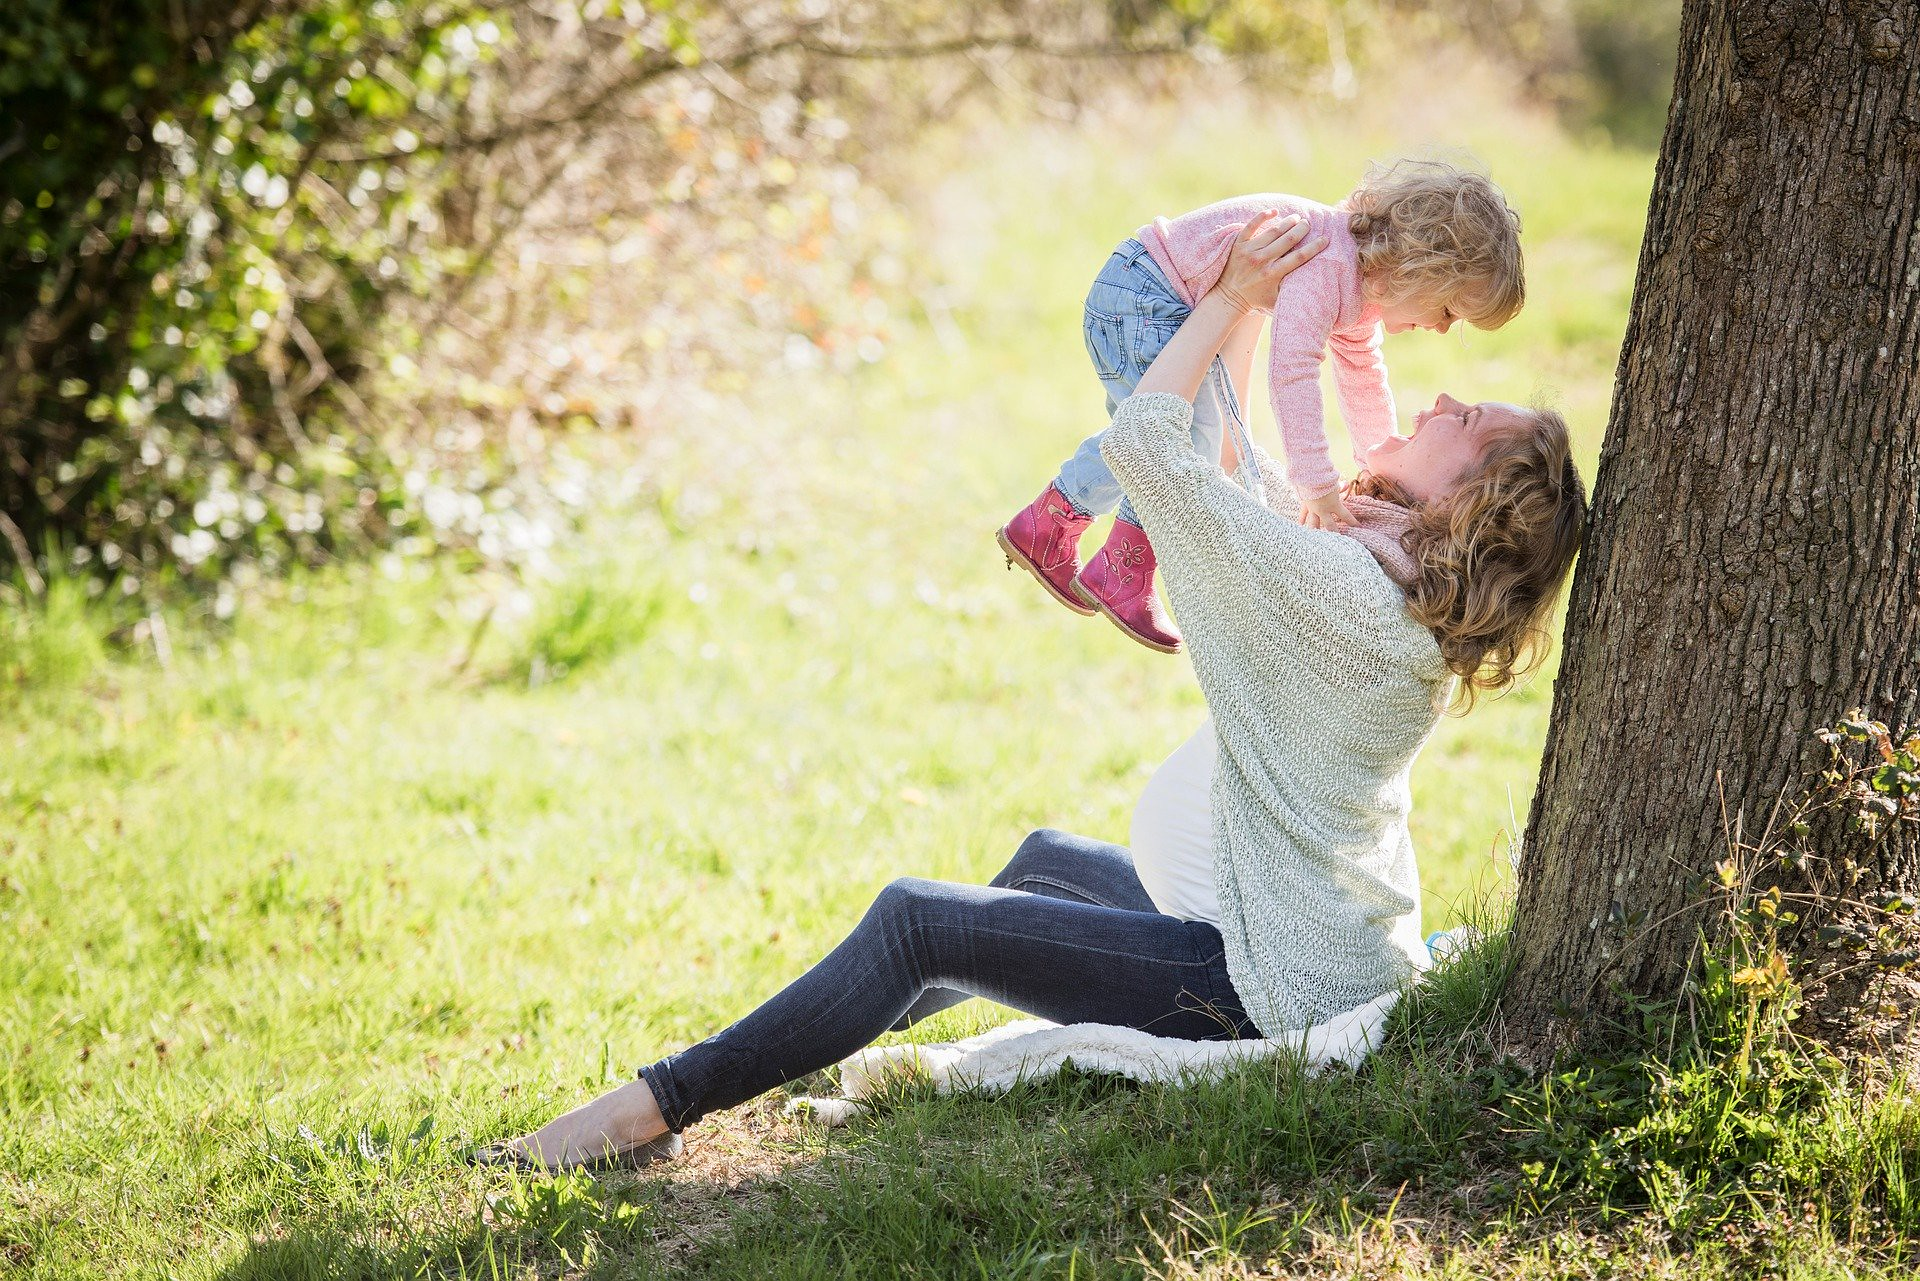 A mother raises her small daughter into the air, while sat beneath a tree in summer time.